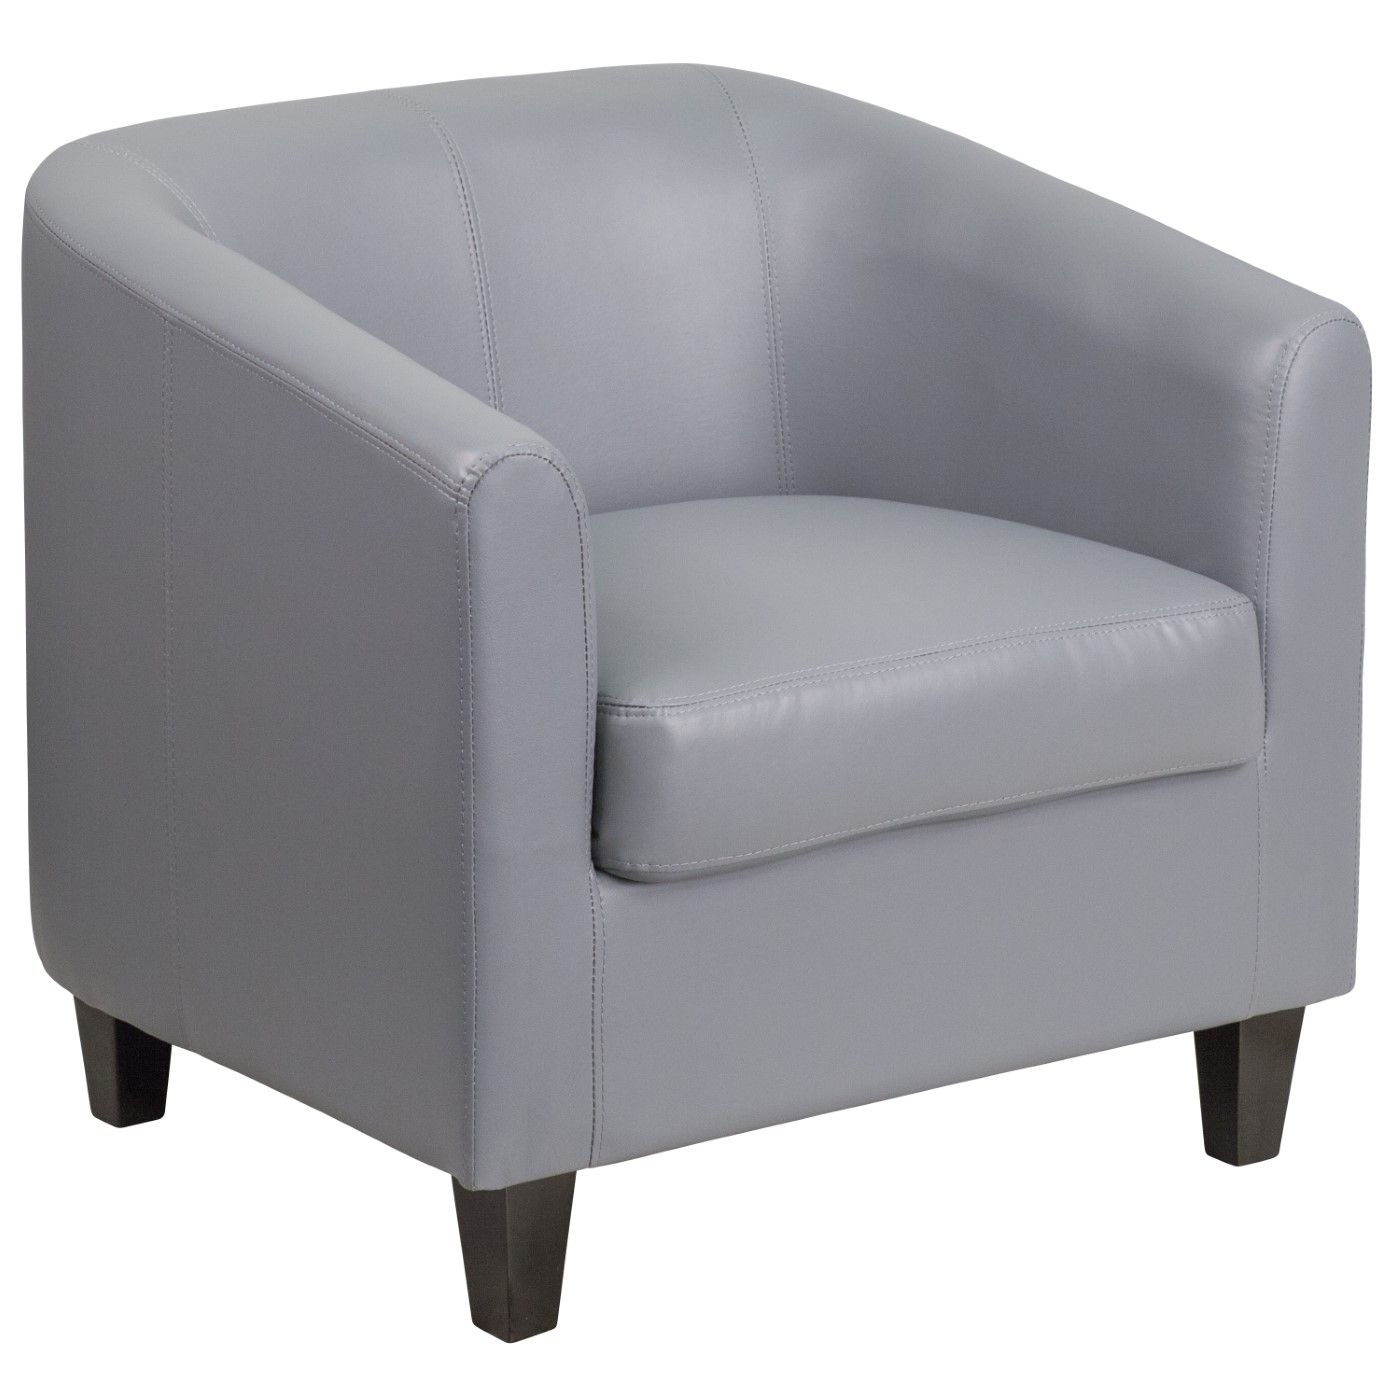 Gray LeatherSoft Lounge Chair